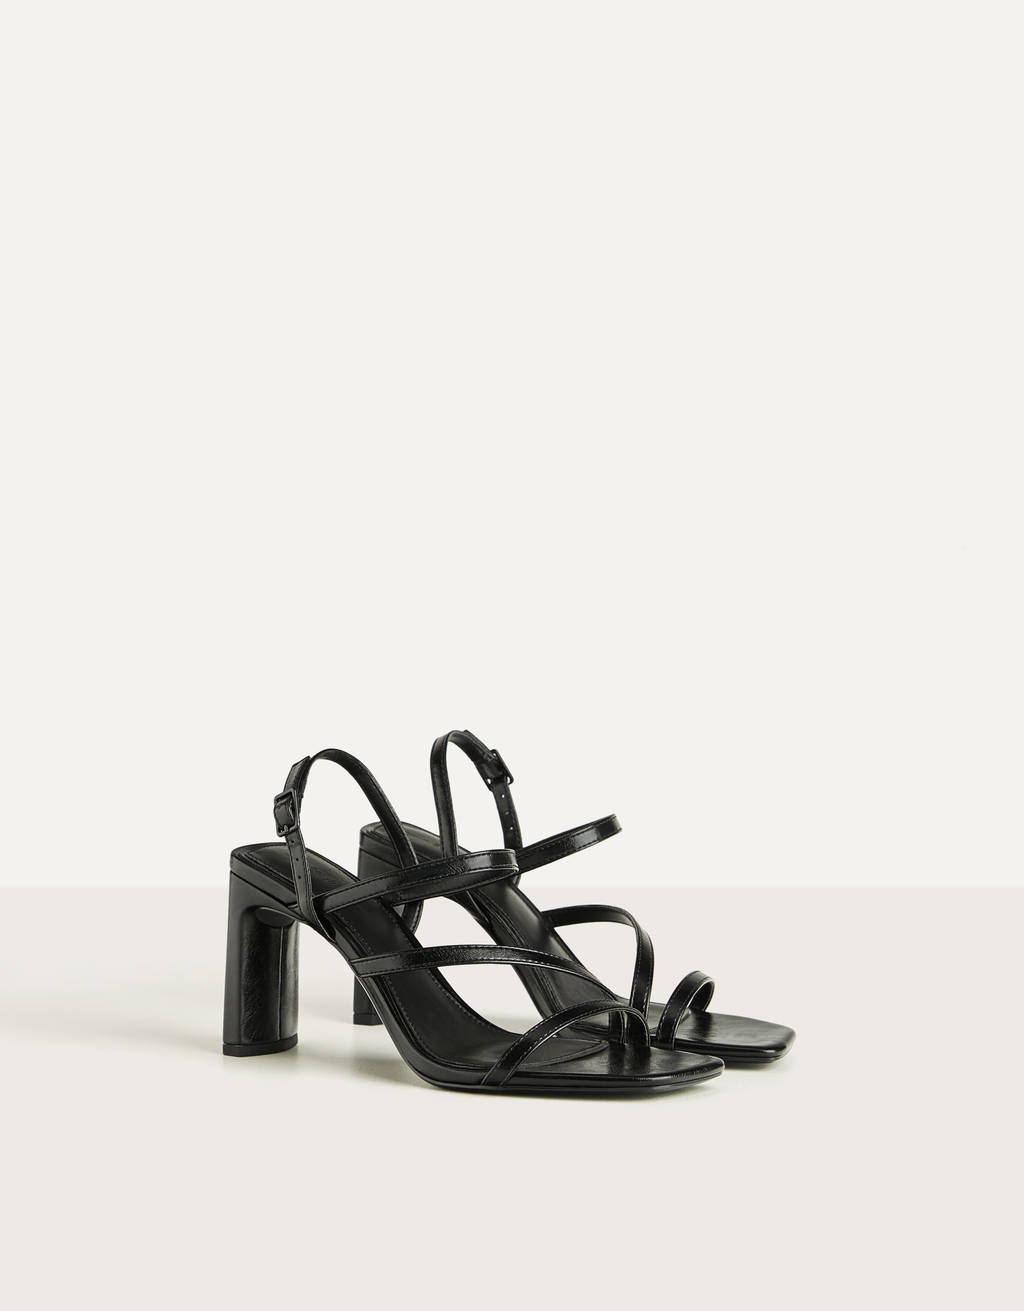 Multi-strap heeled sandals